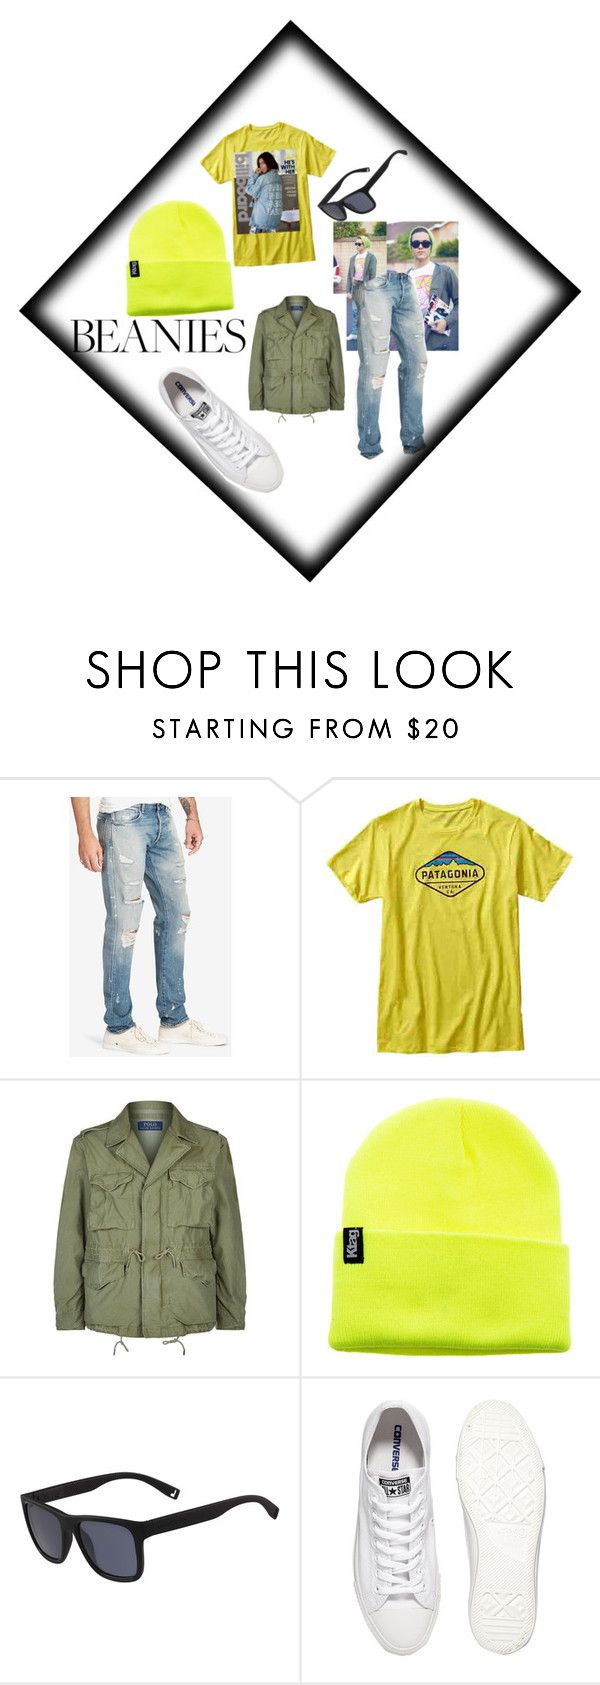 """Beanie Man"" by jsable456 ❤ liked on Polyvore featuring ADAM, Denim & Supply by Ralph Lauren, Patagonia, Polo Ralph Lauren, Lacoste and Converse"